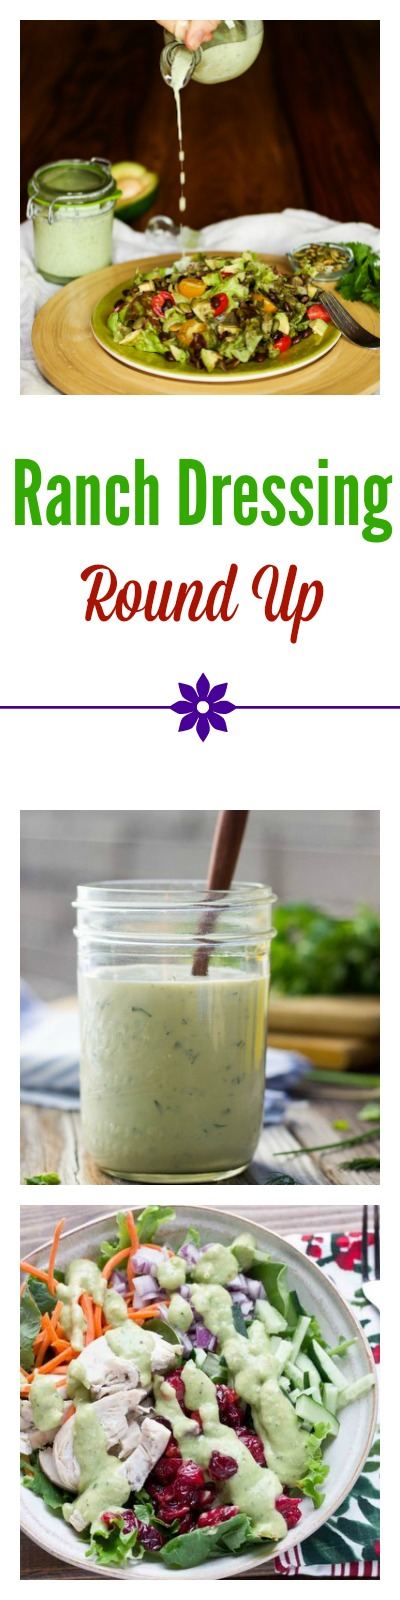 Ranch Dressing Round Up | TeaspoonOfSpice.com